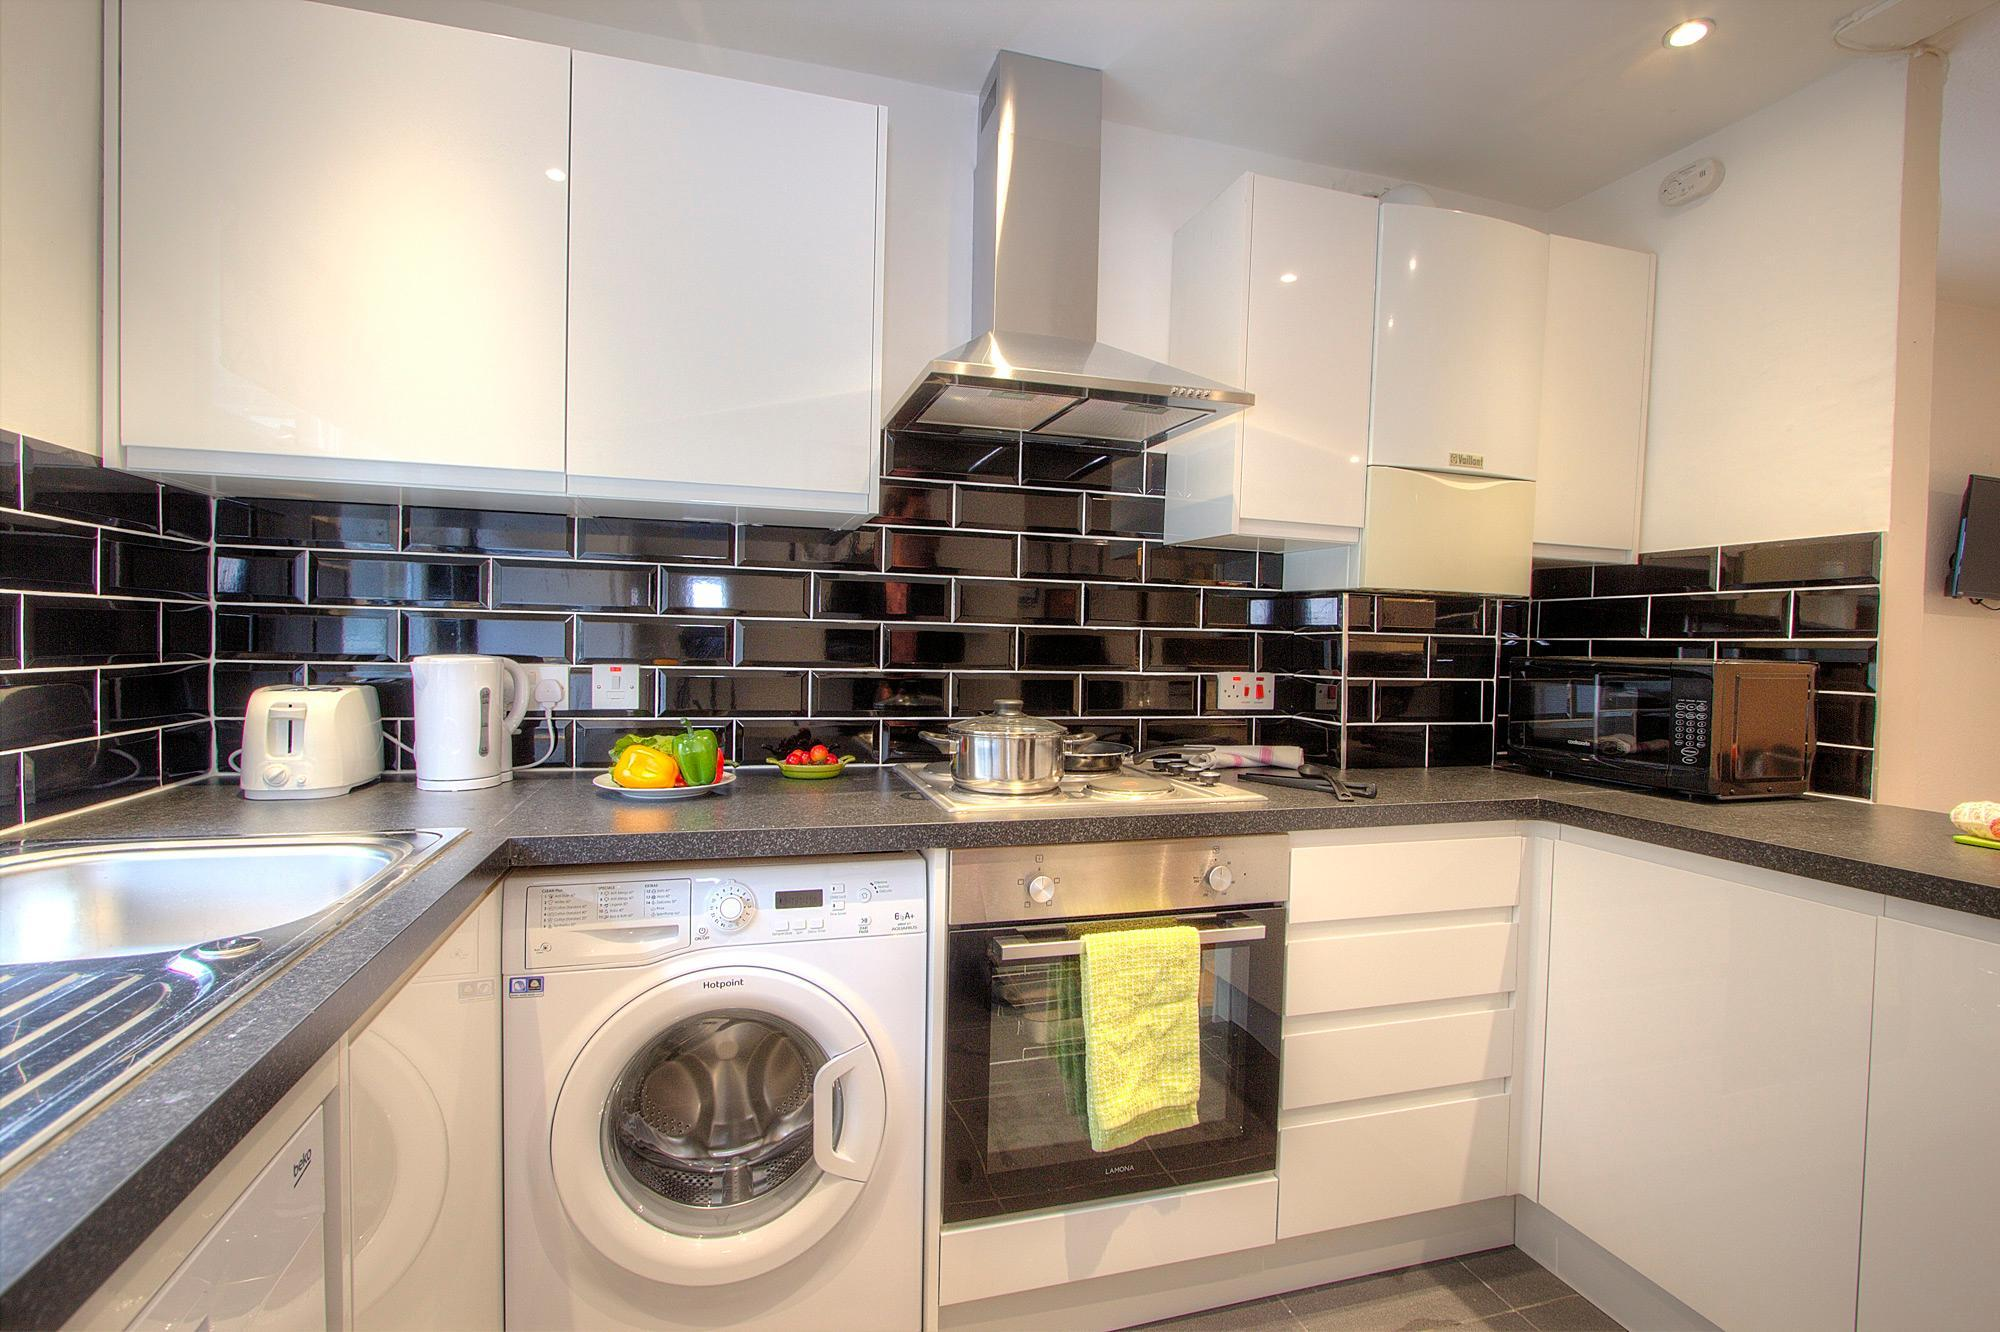 3 Bedroom Apartment in London #QP Reviews